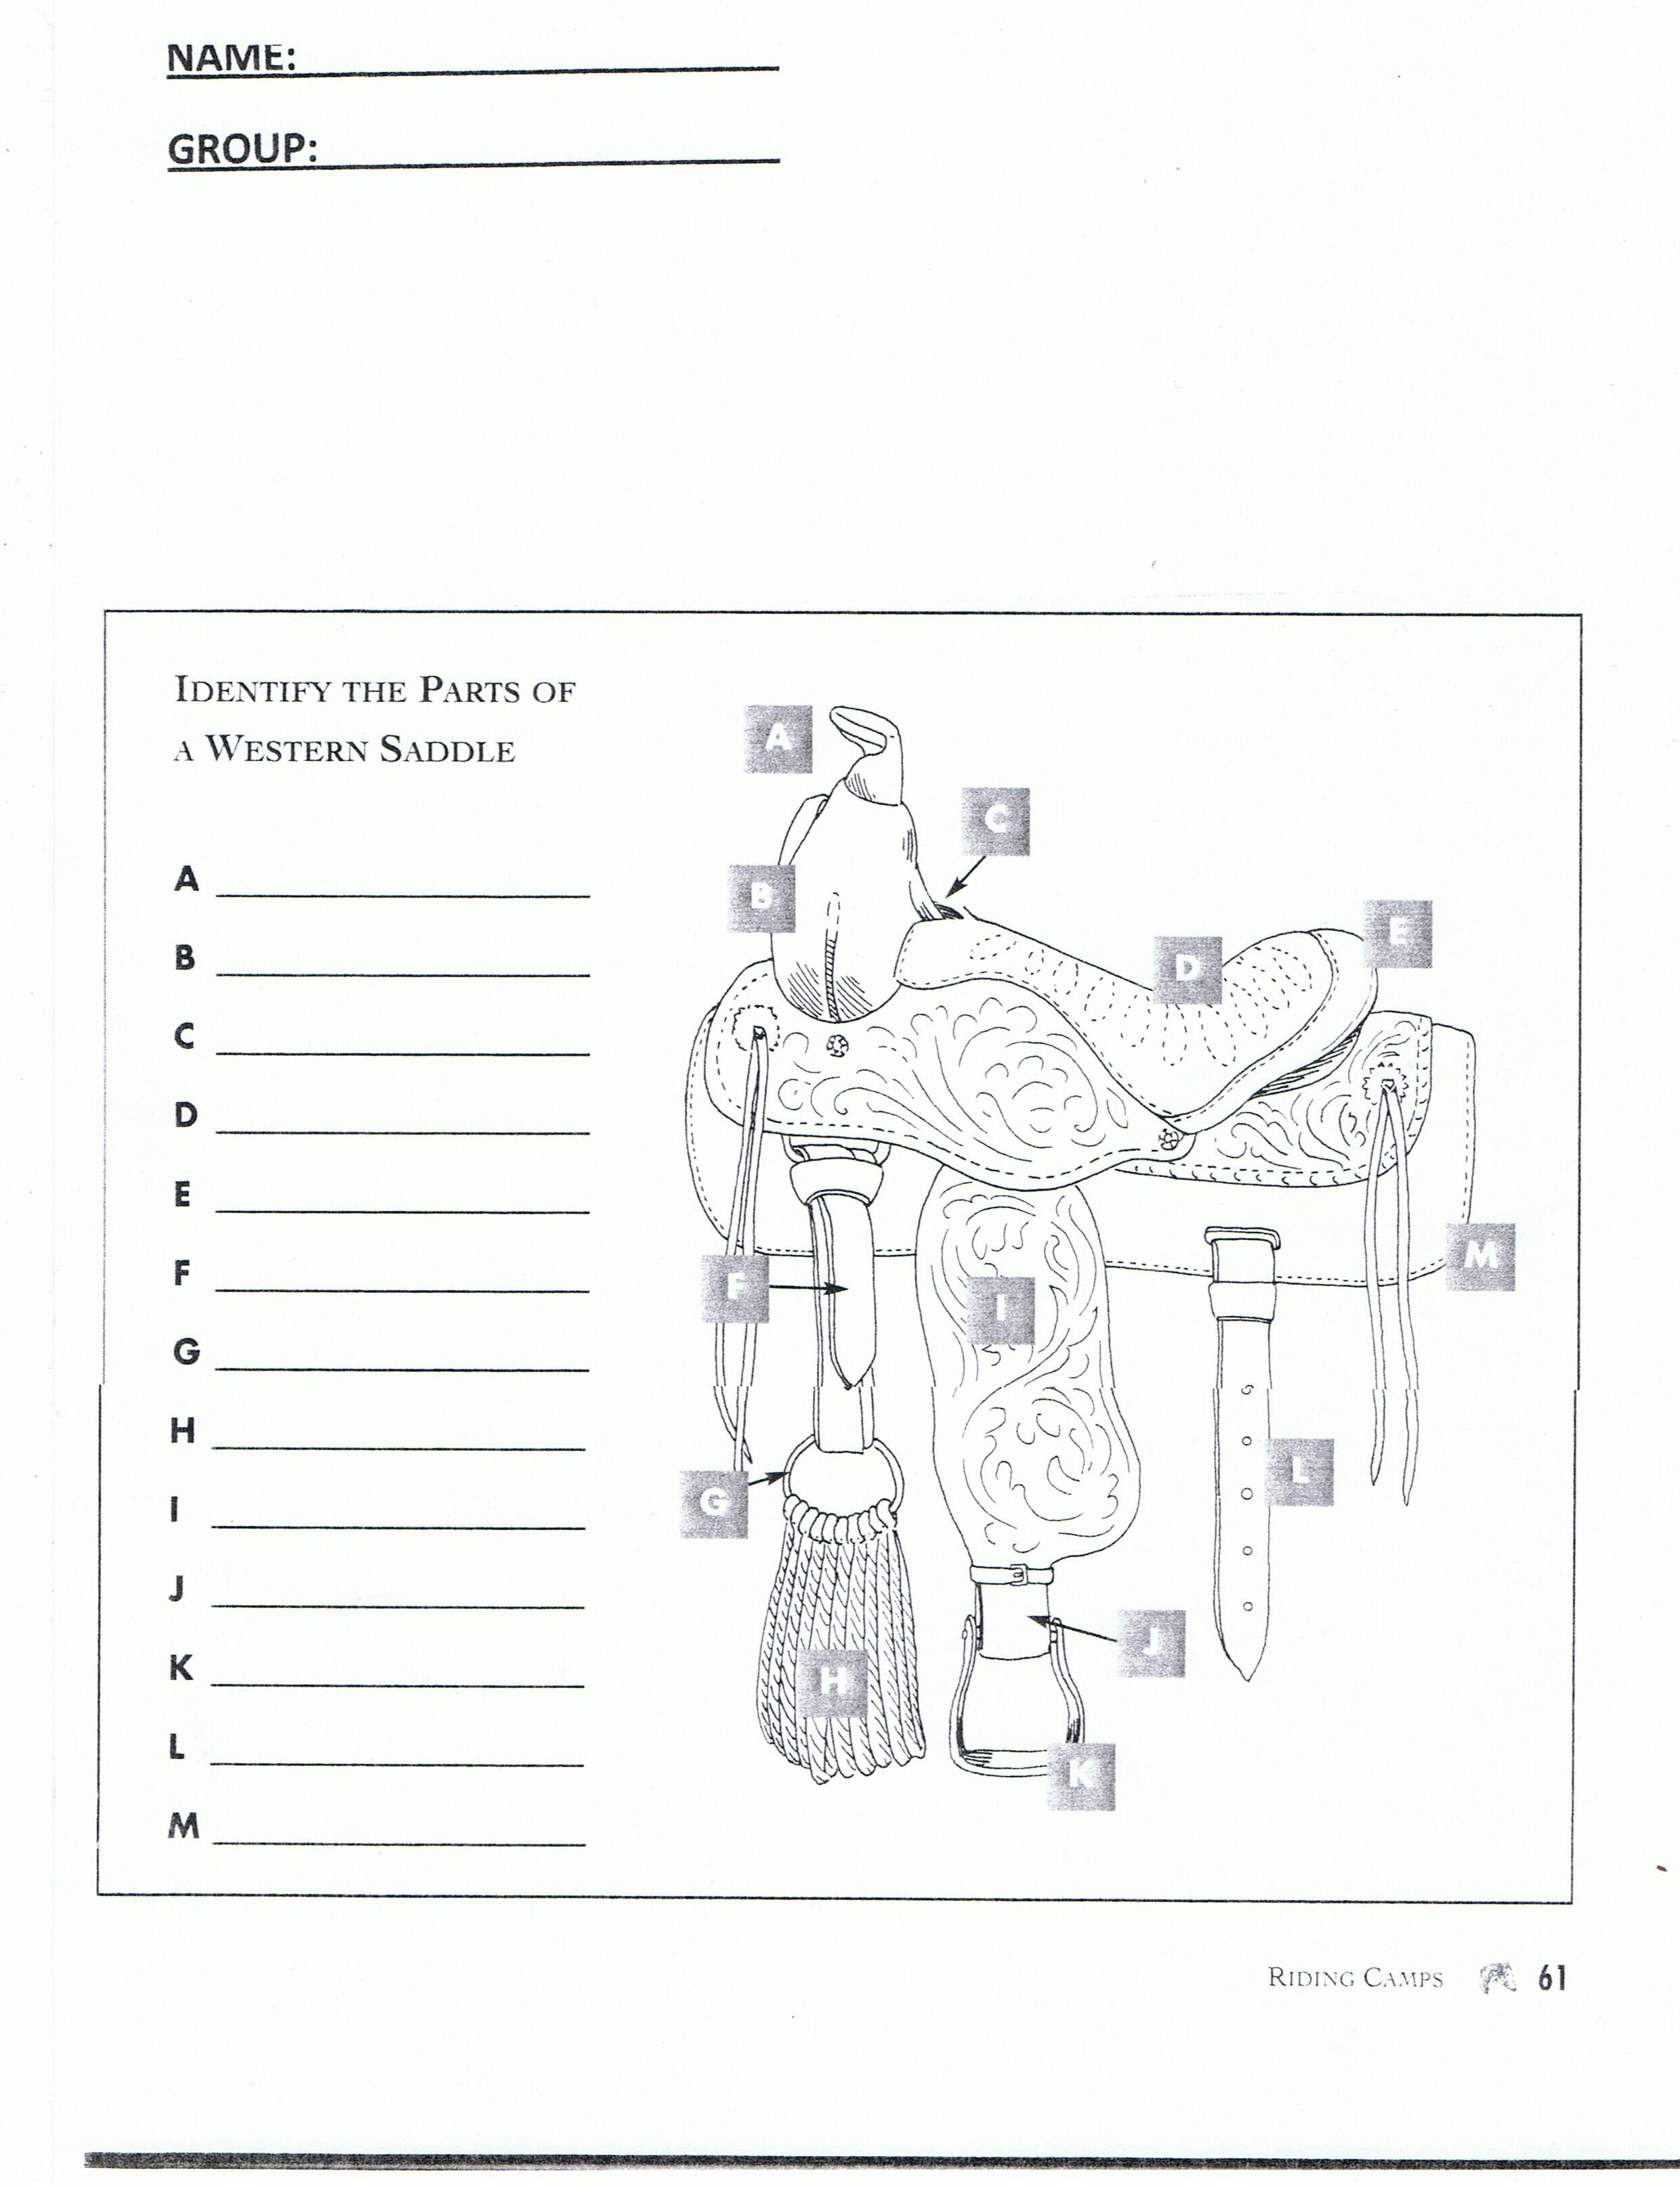 c255ca549b63752bf8fa45c10de12a62 worksheet part of saddle google search pony camp worksheets